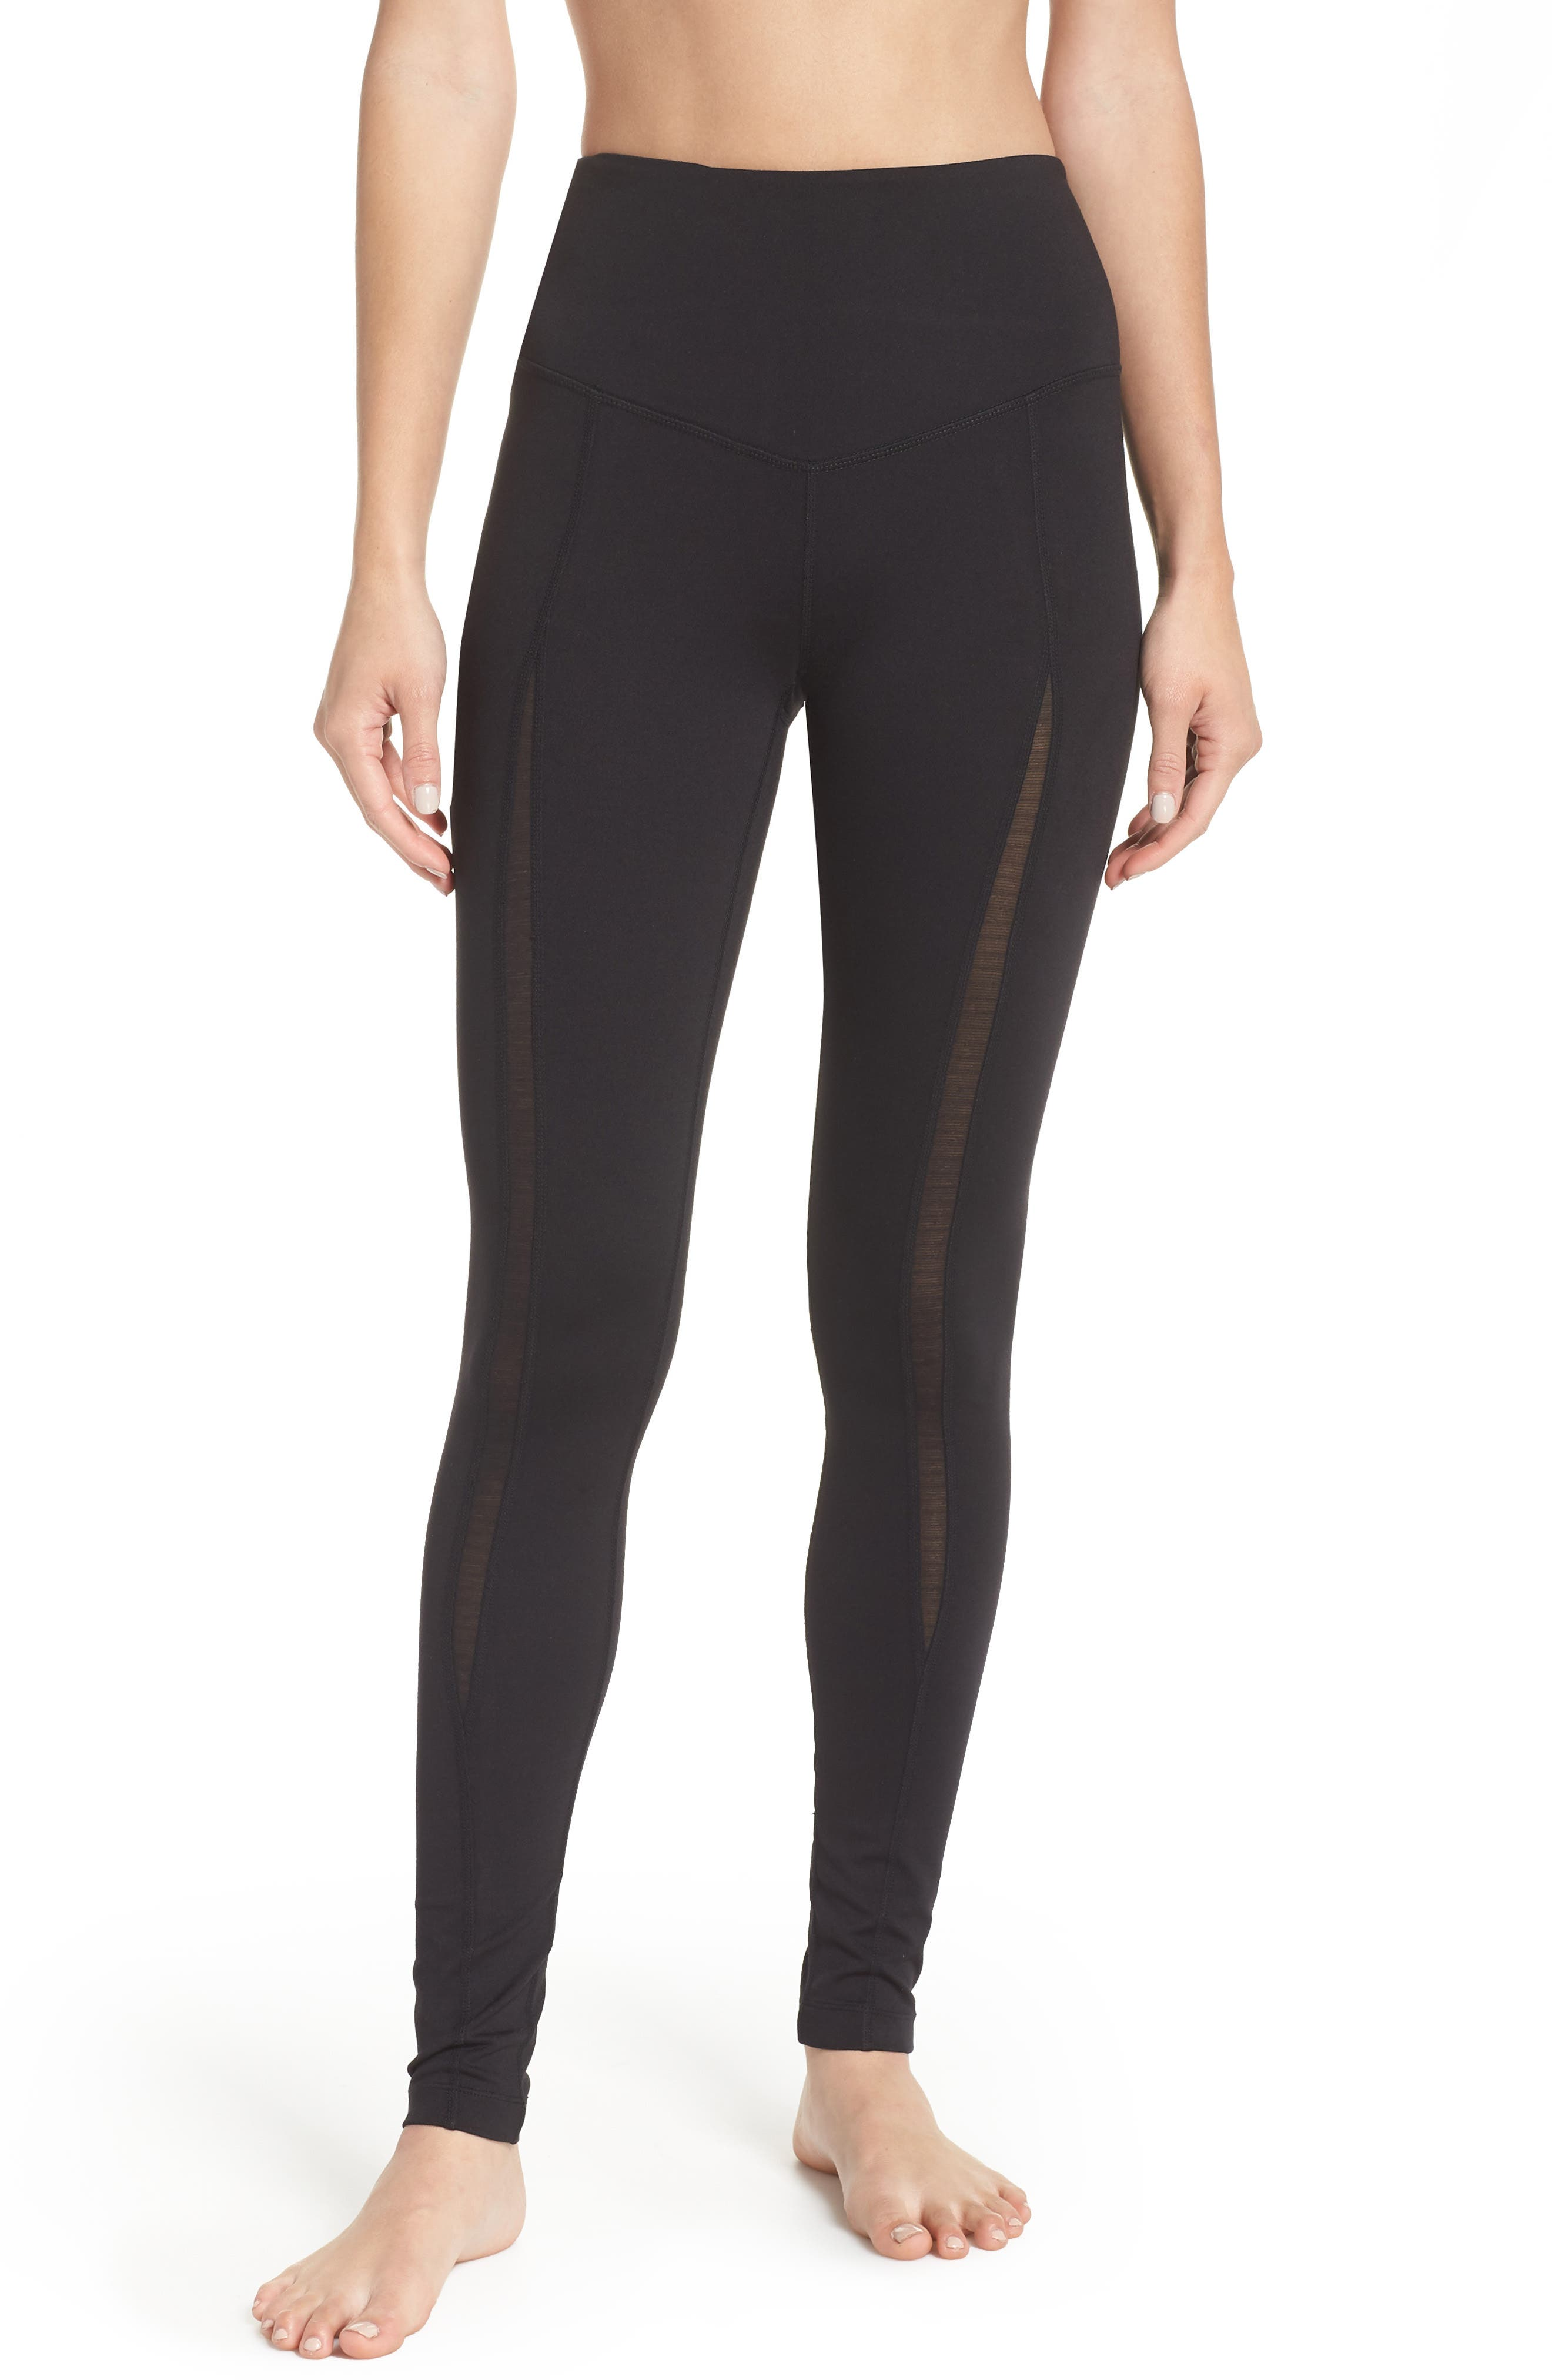 Reinvent Recycled High Waist Leggings,                             Main thumbnail 1, color,                             BLACK